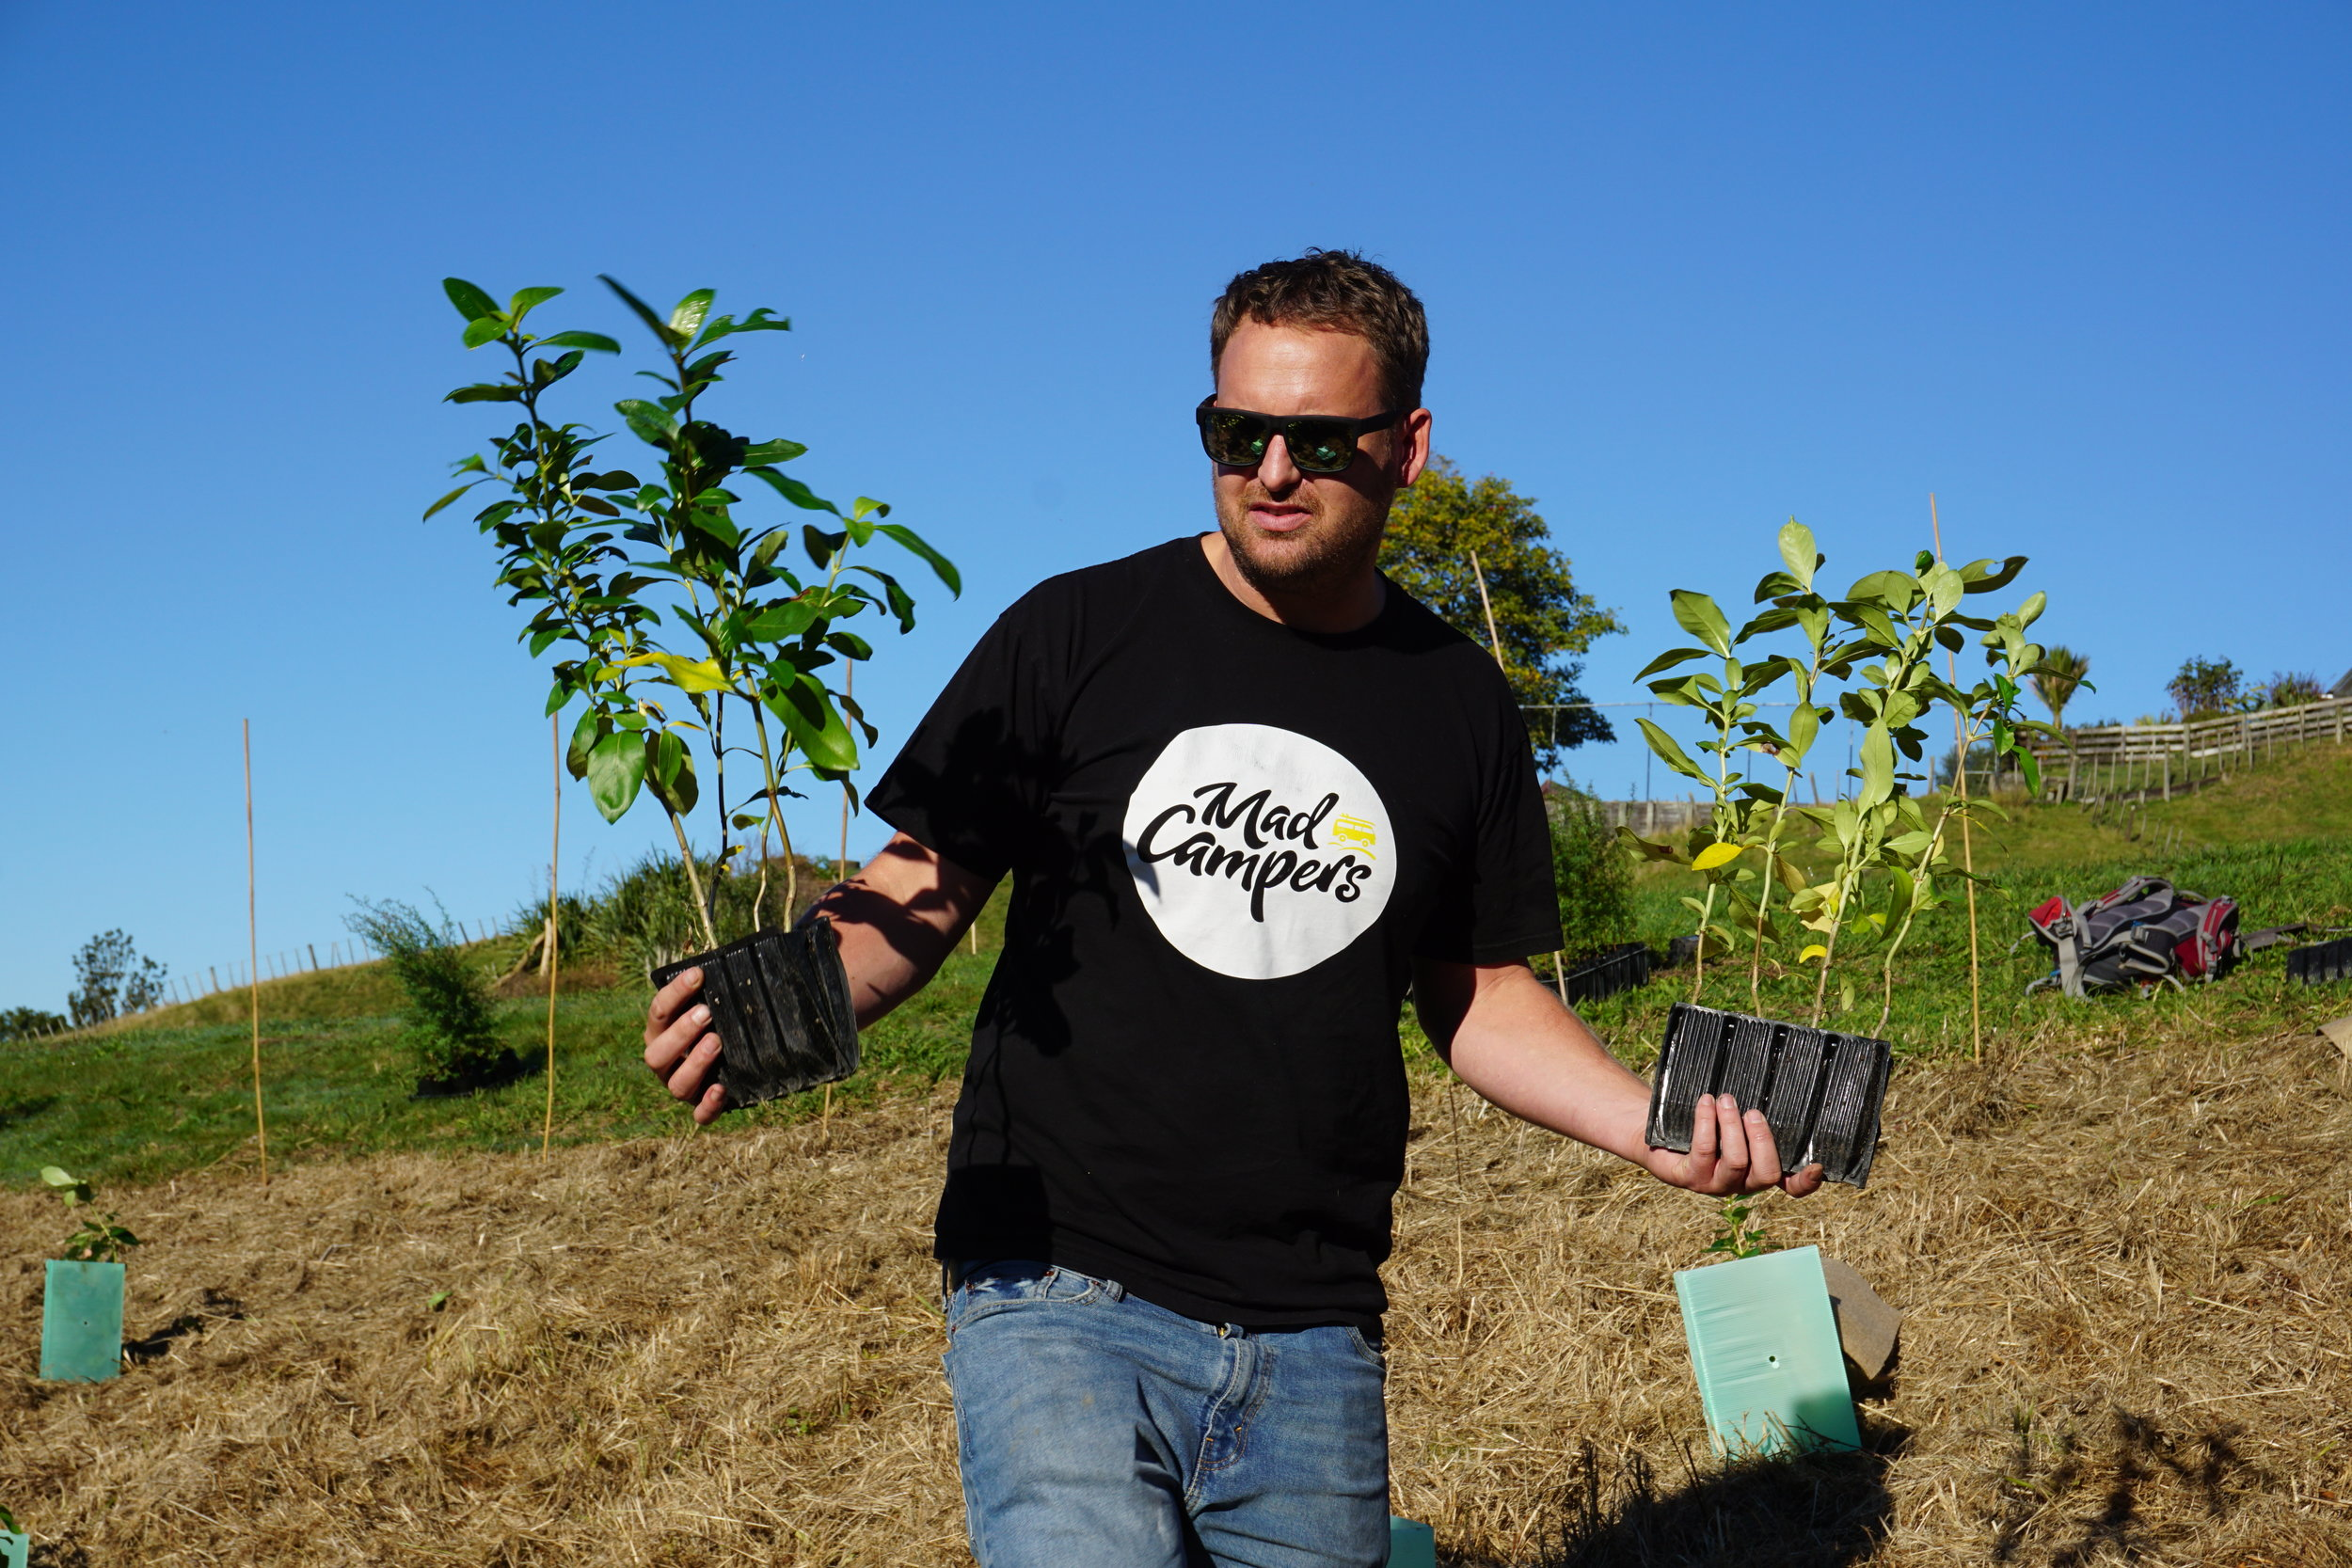 Planting Native Trees in Auckland with Mad Campers